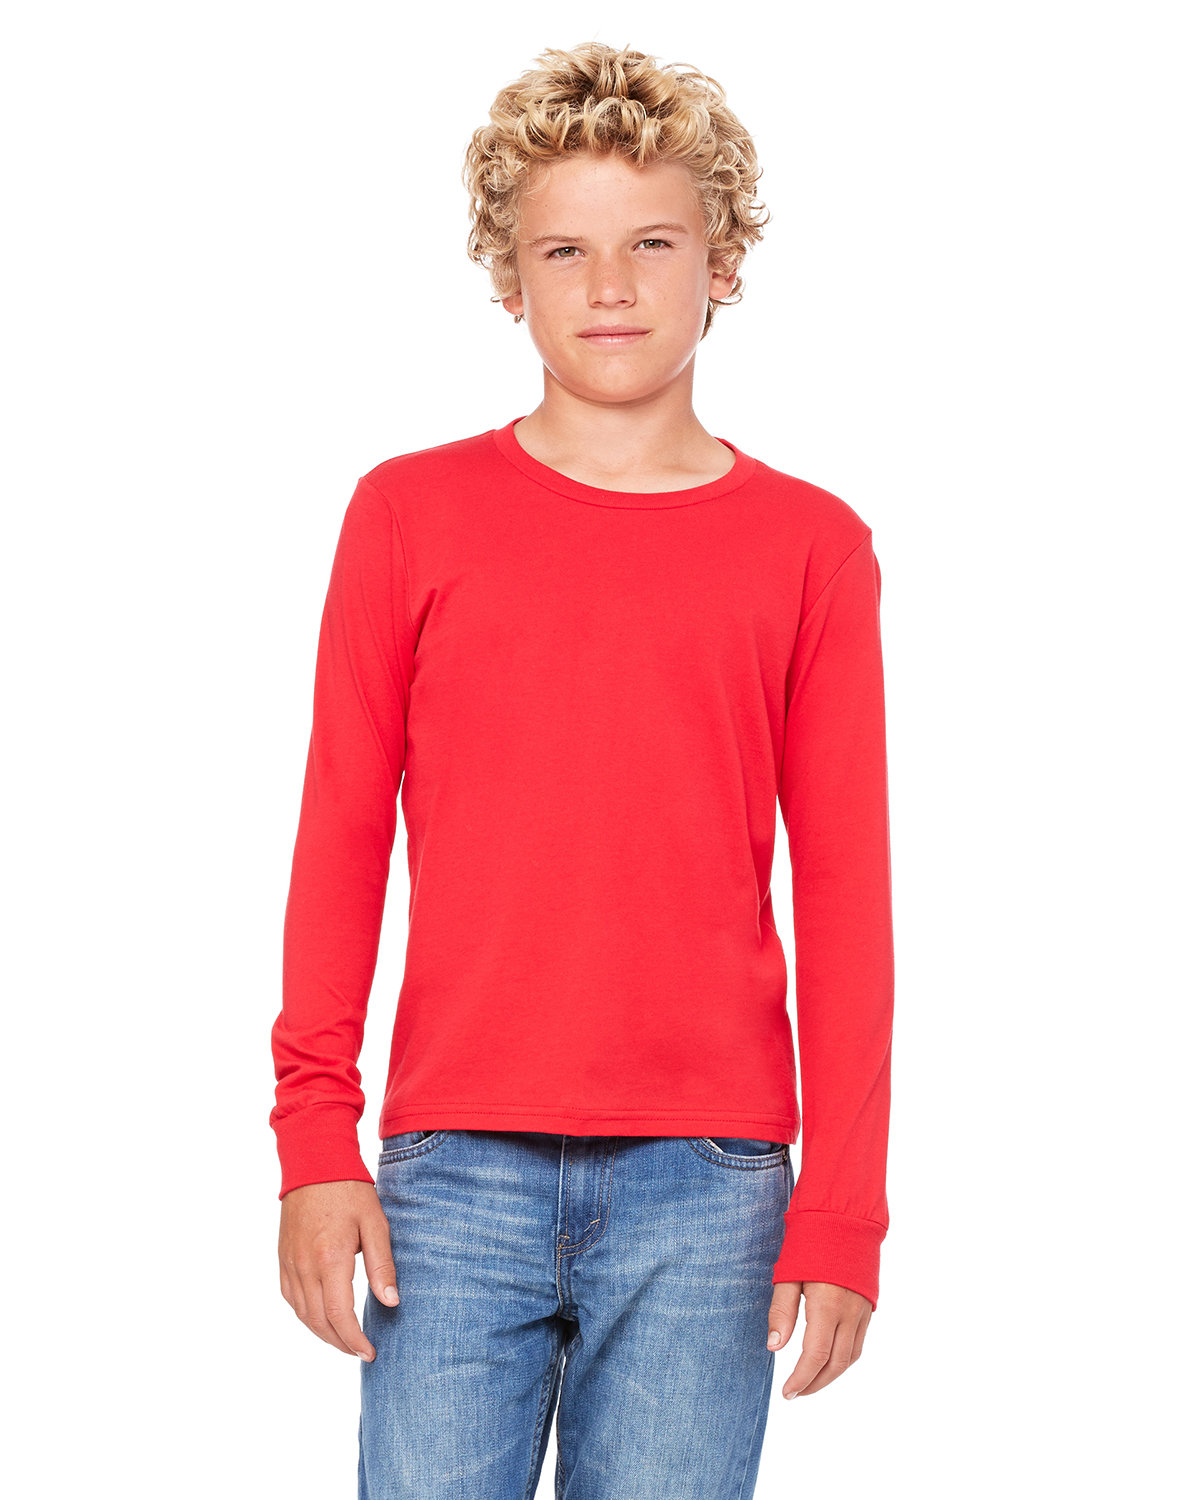 Bella + Canvas Youth Jersey Long-Sleeve T-Shirt RED